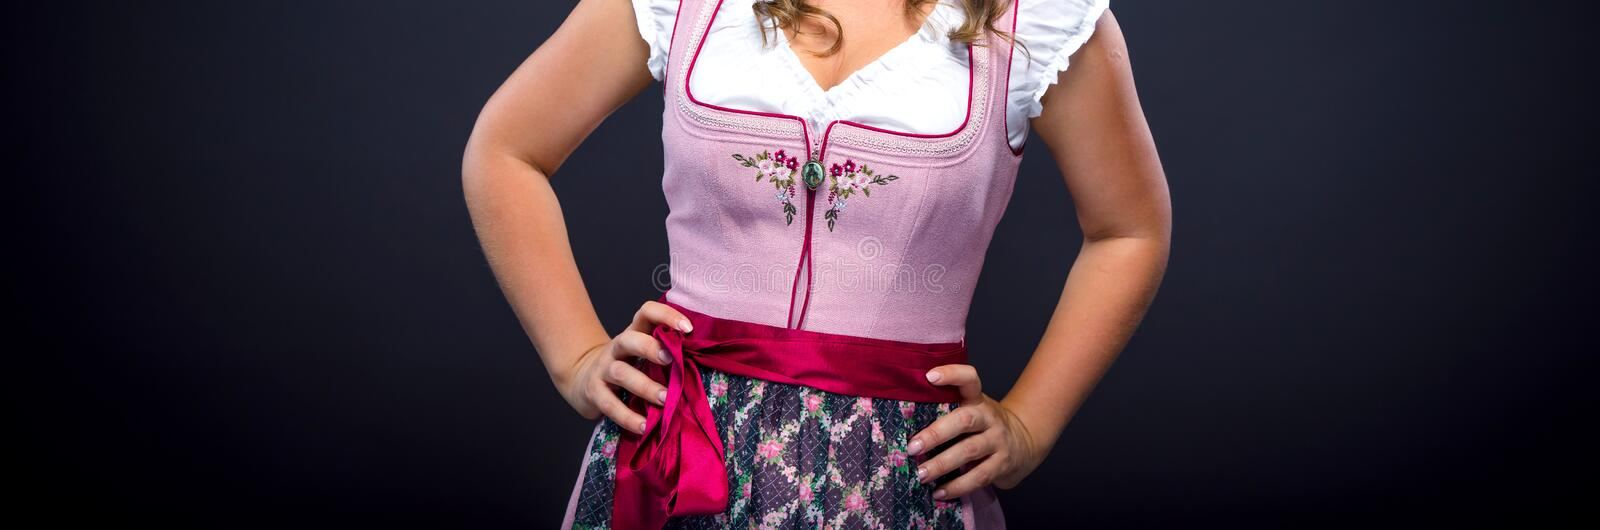 Beautiful woman in a traditional bavarian dirndl stock photos